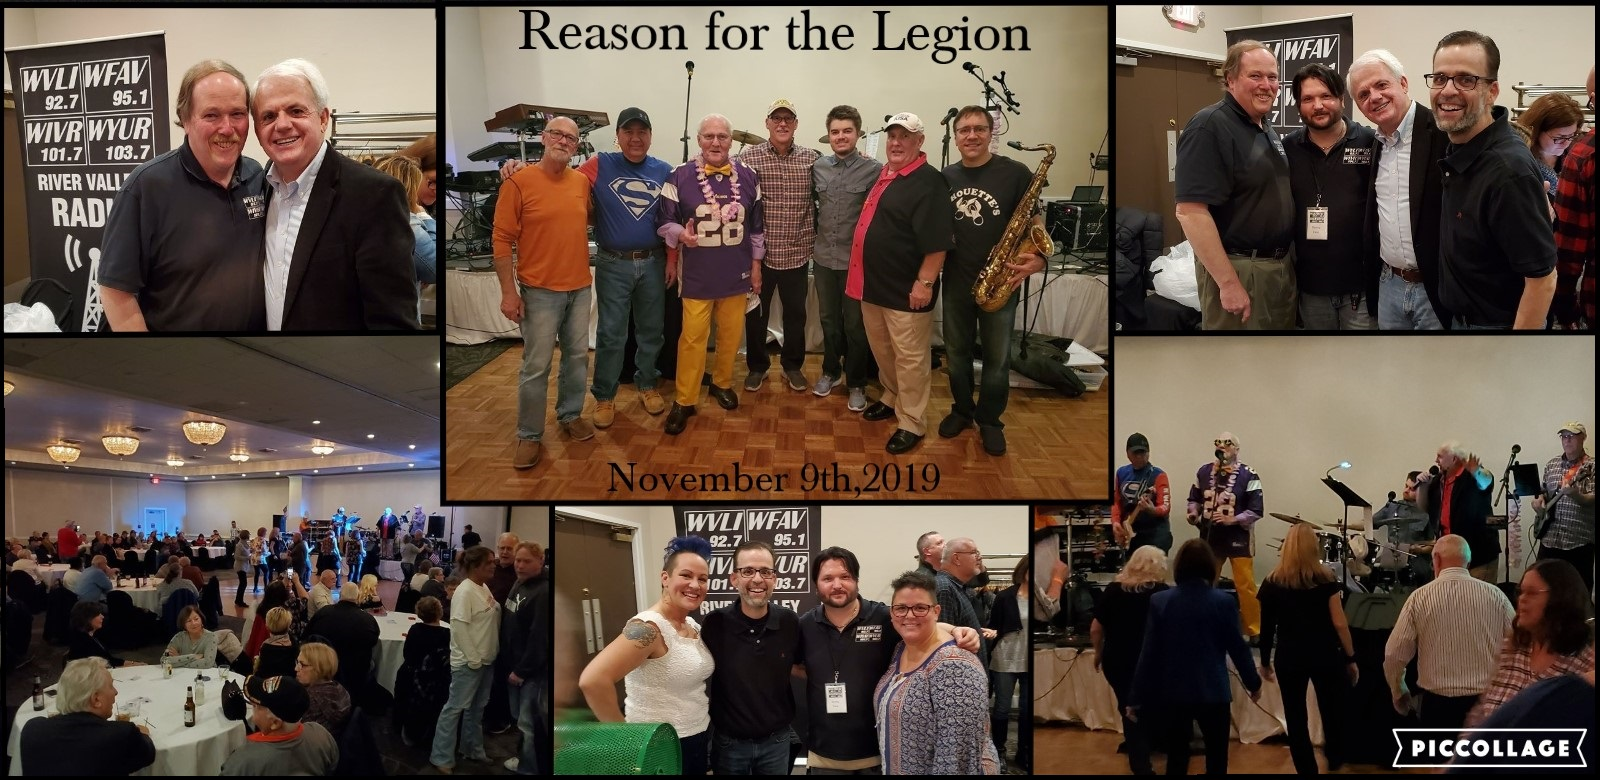 Reasons for the Legion